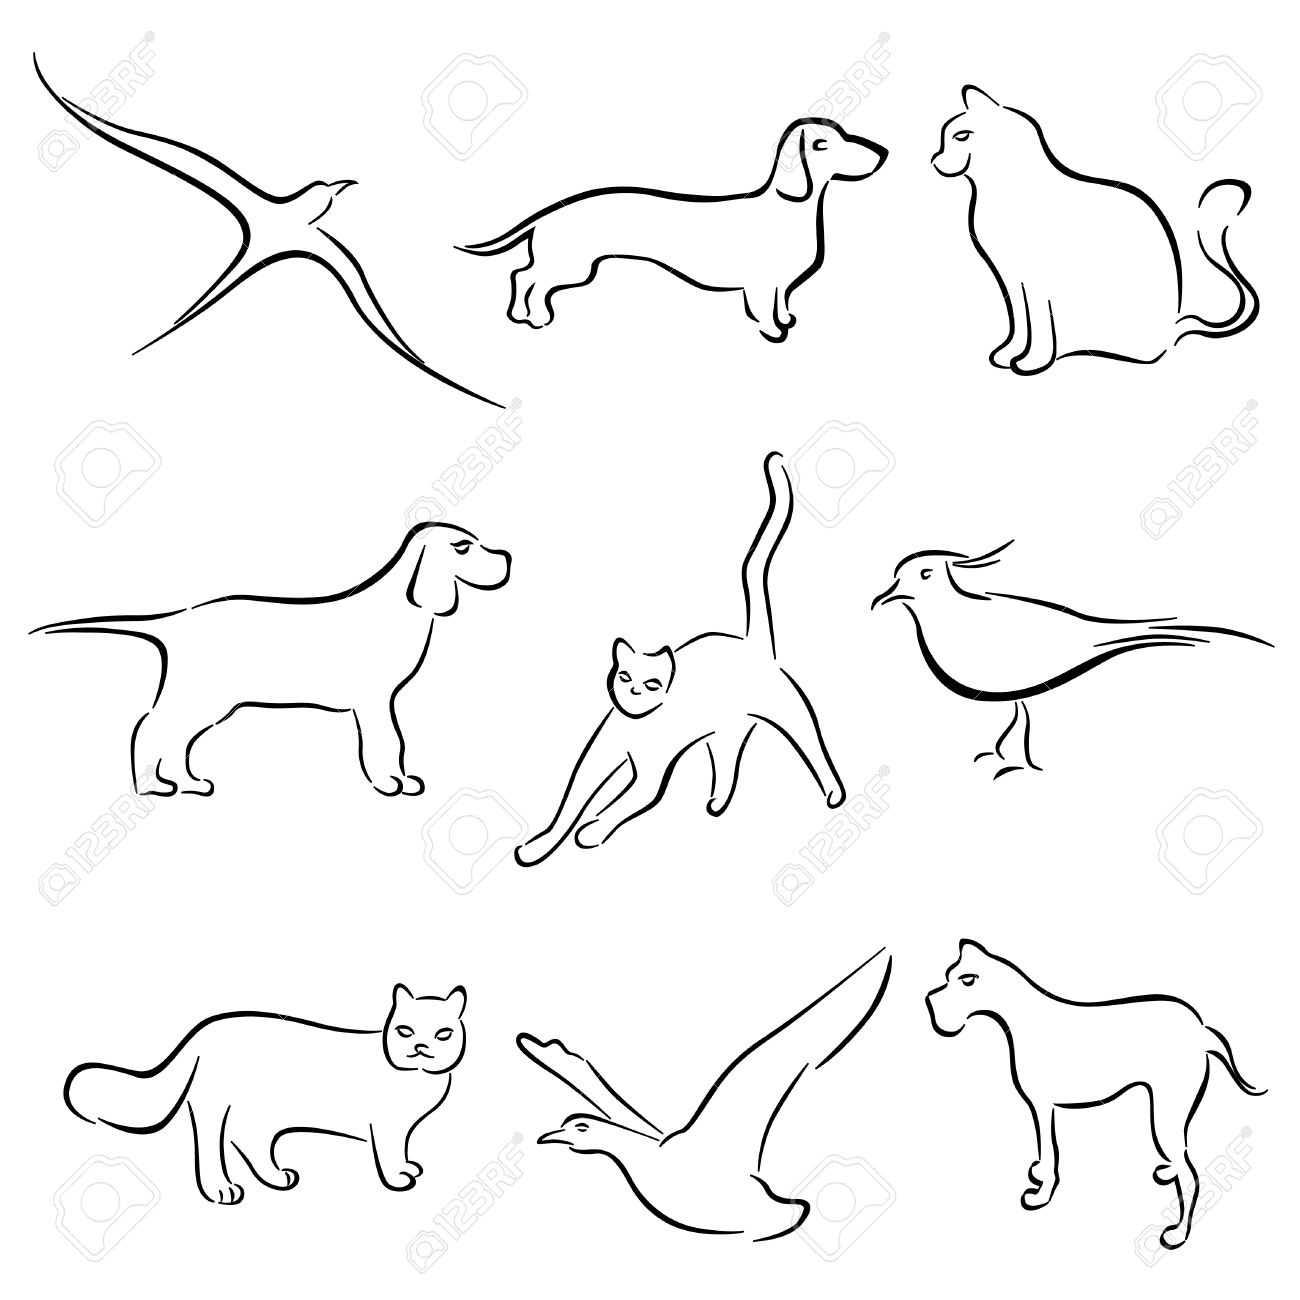 Rabbit Drawing Outline at GetDrawings | Free download